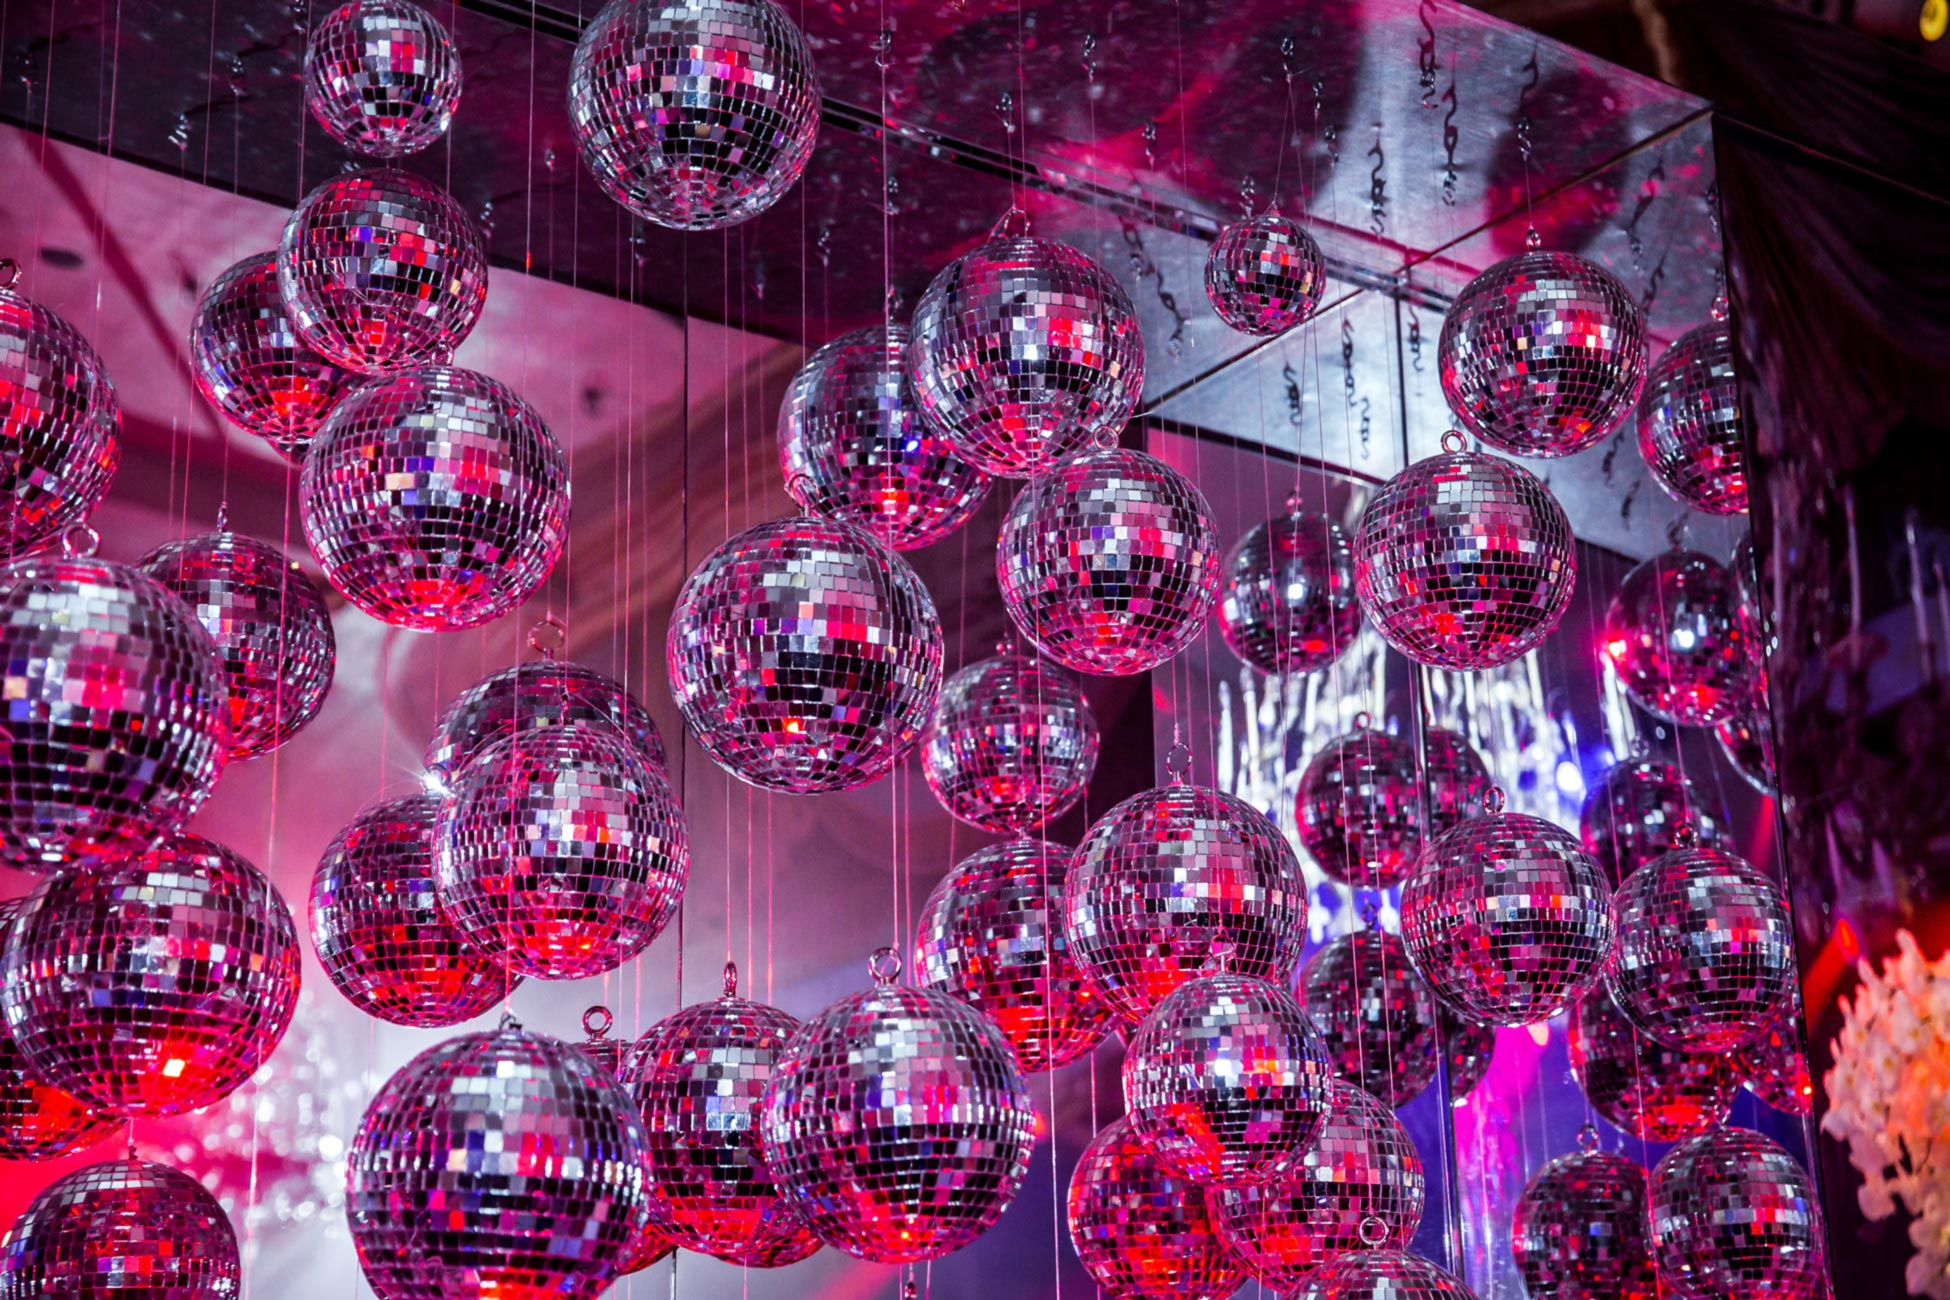 Discoballs custom back bar installation.